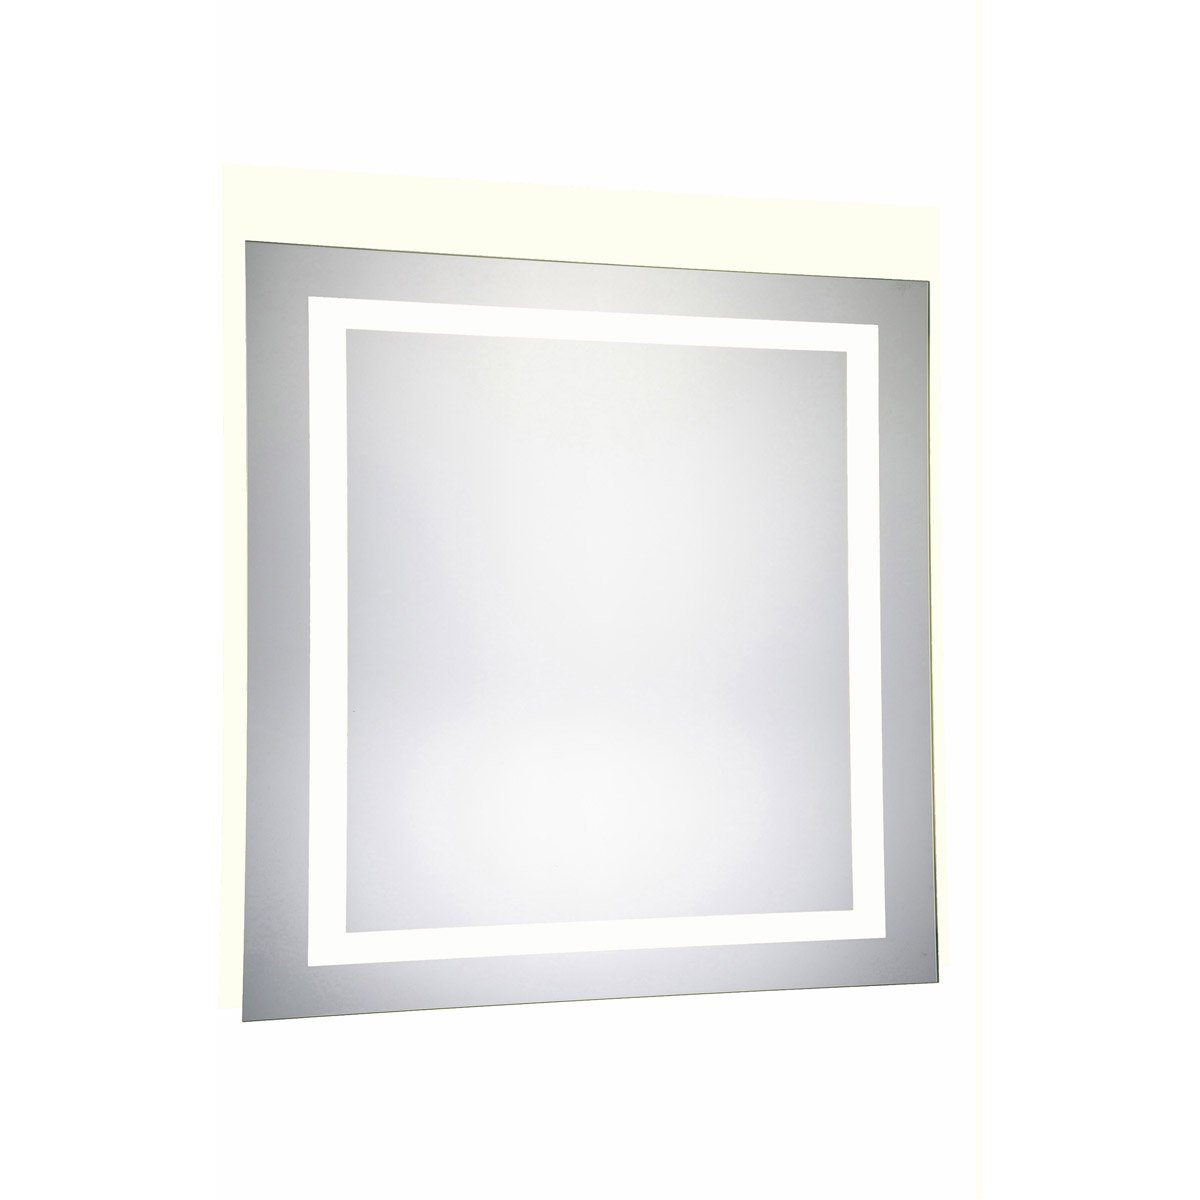 Nova 36 X 36 Hardwired Glossy White Led Wall Mirror (Mre-6030) Led Mirror